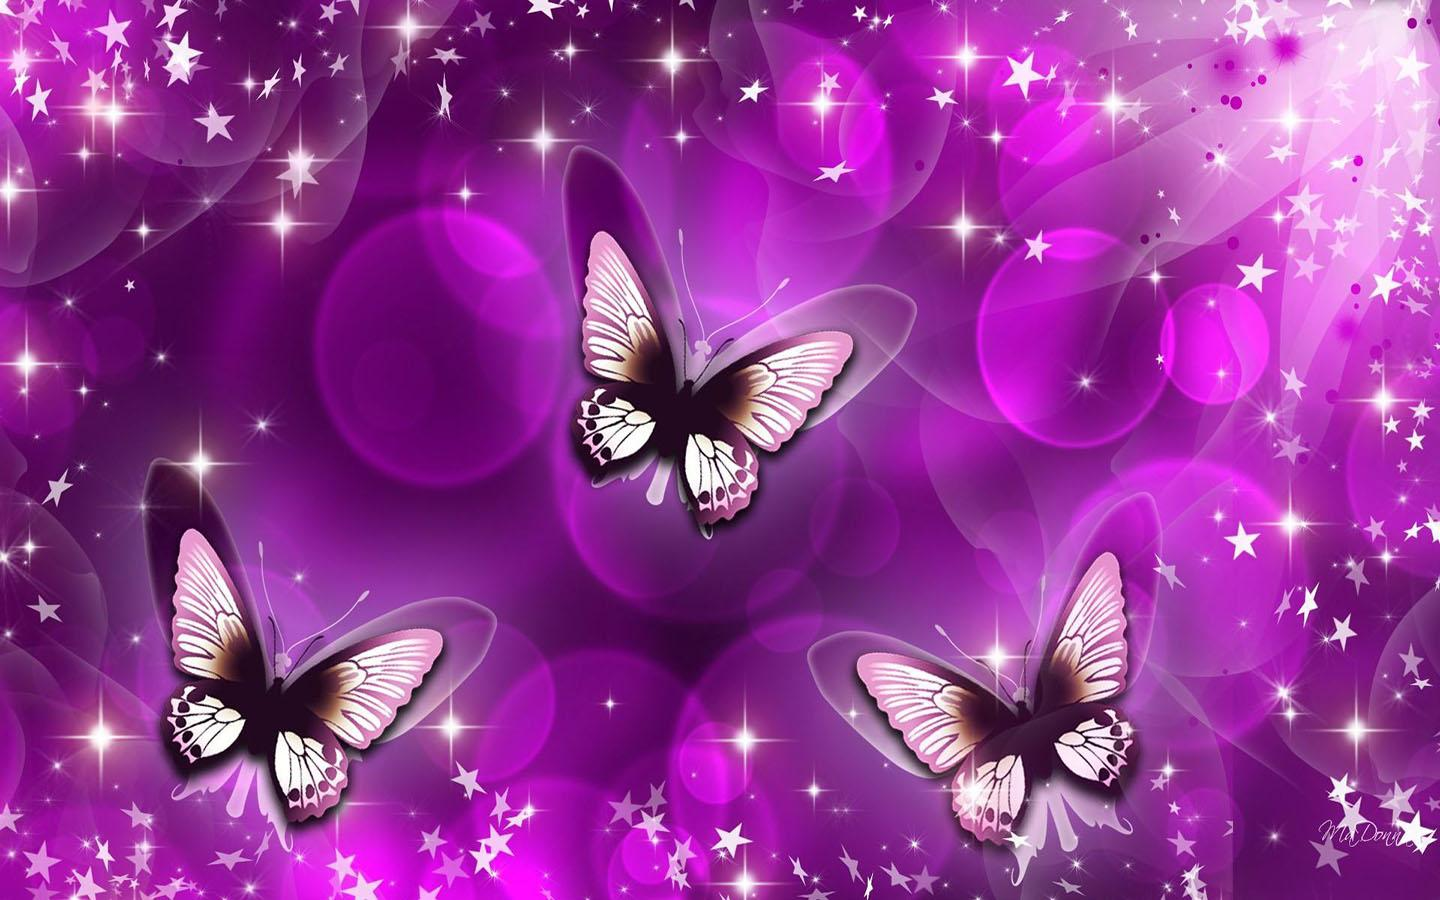 8ae70b03e This beautiful and amazing purple Wallpaper is waiting for you!